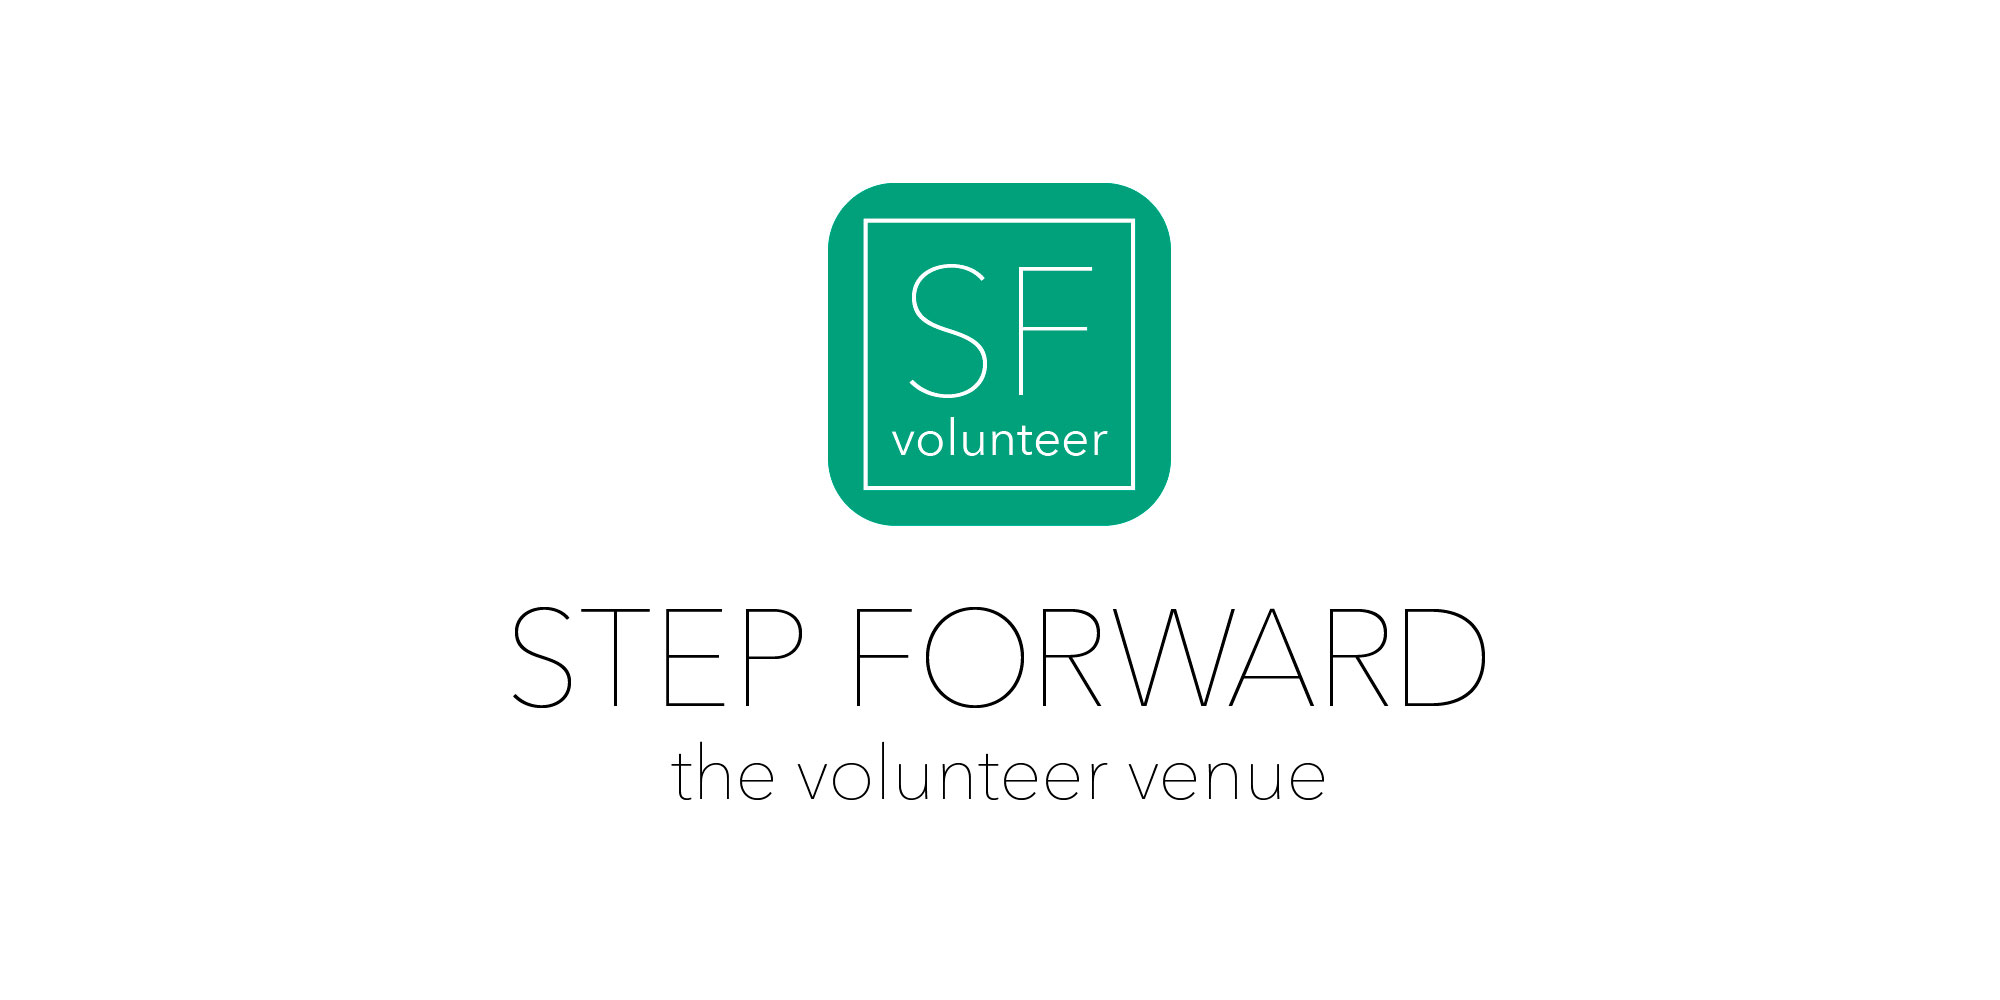 Step Forward App Logo Design - KLN Design